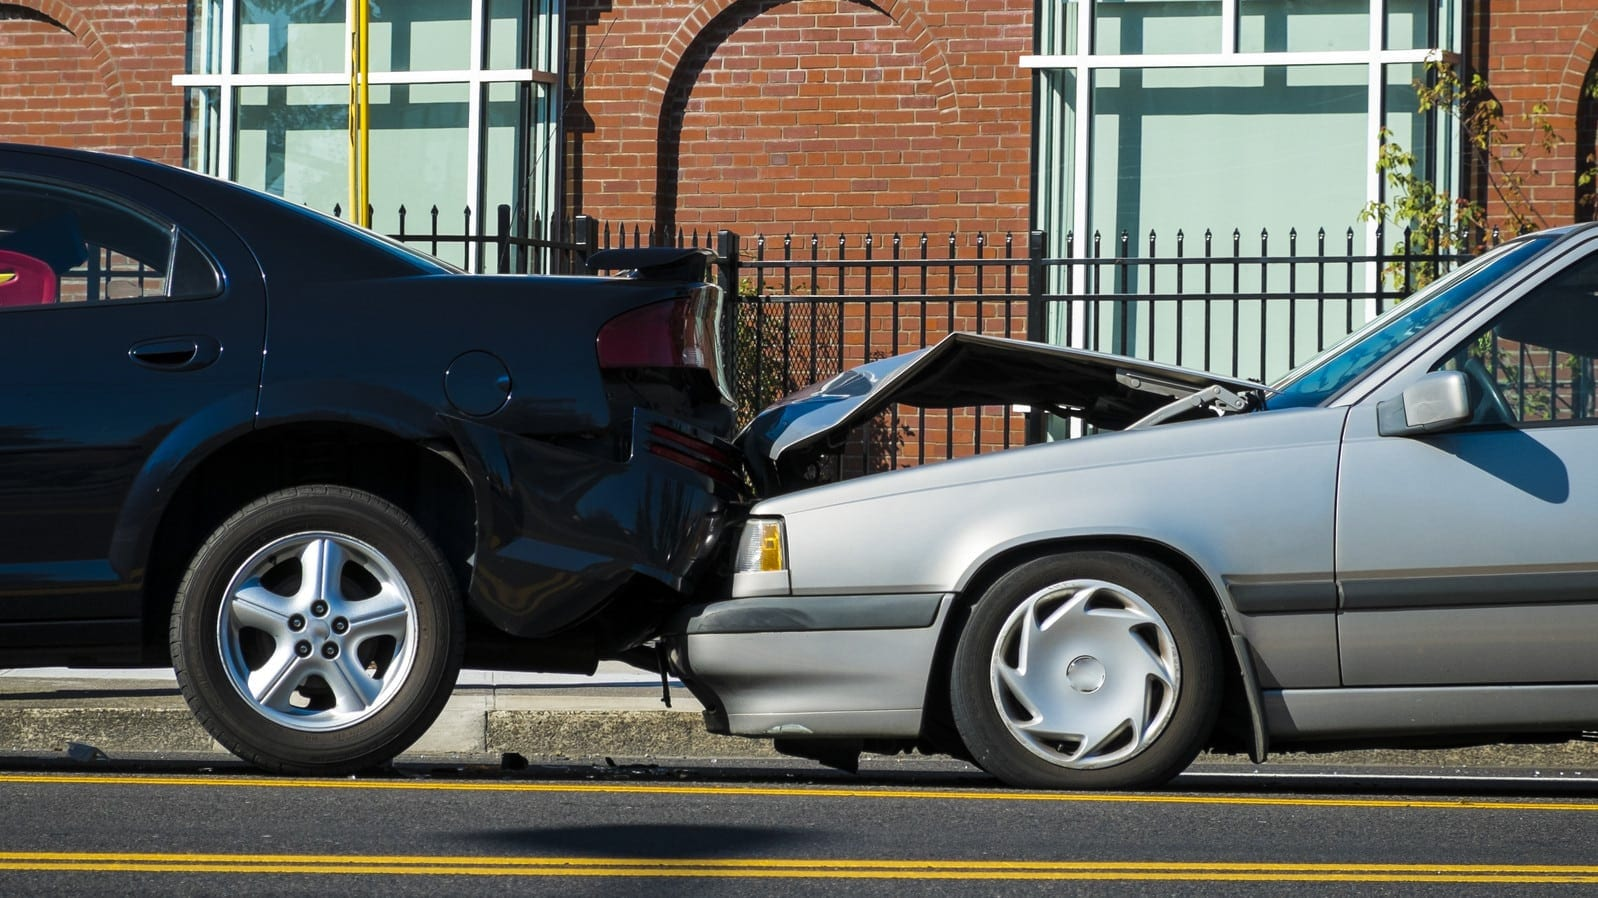 Rear ended auto accident involving two cars on a city street